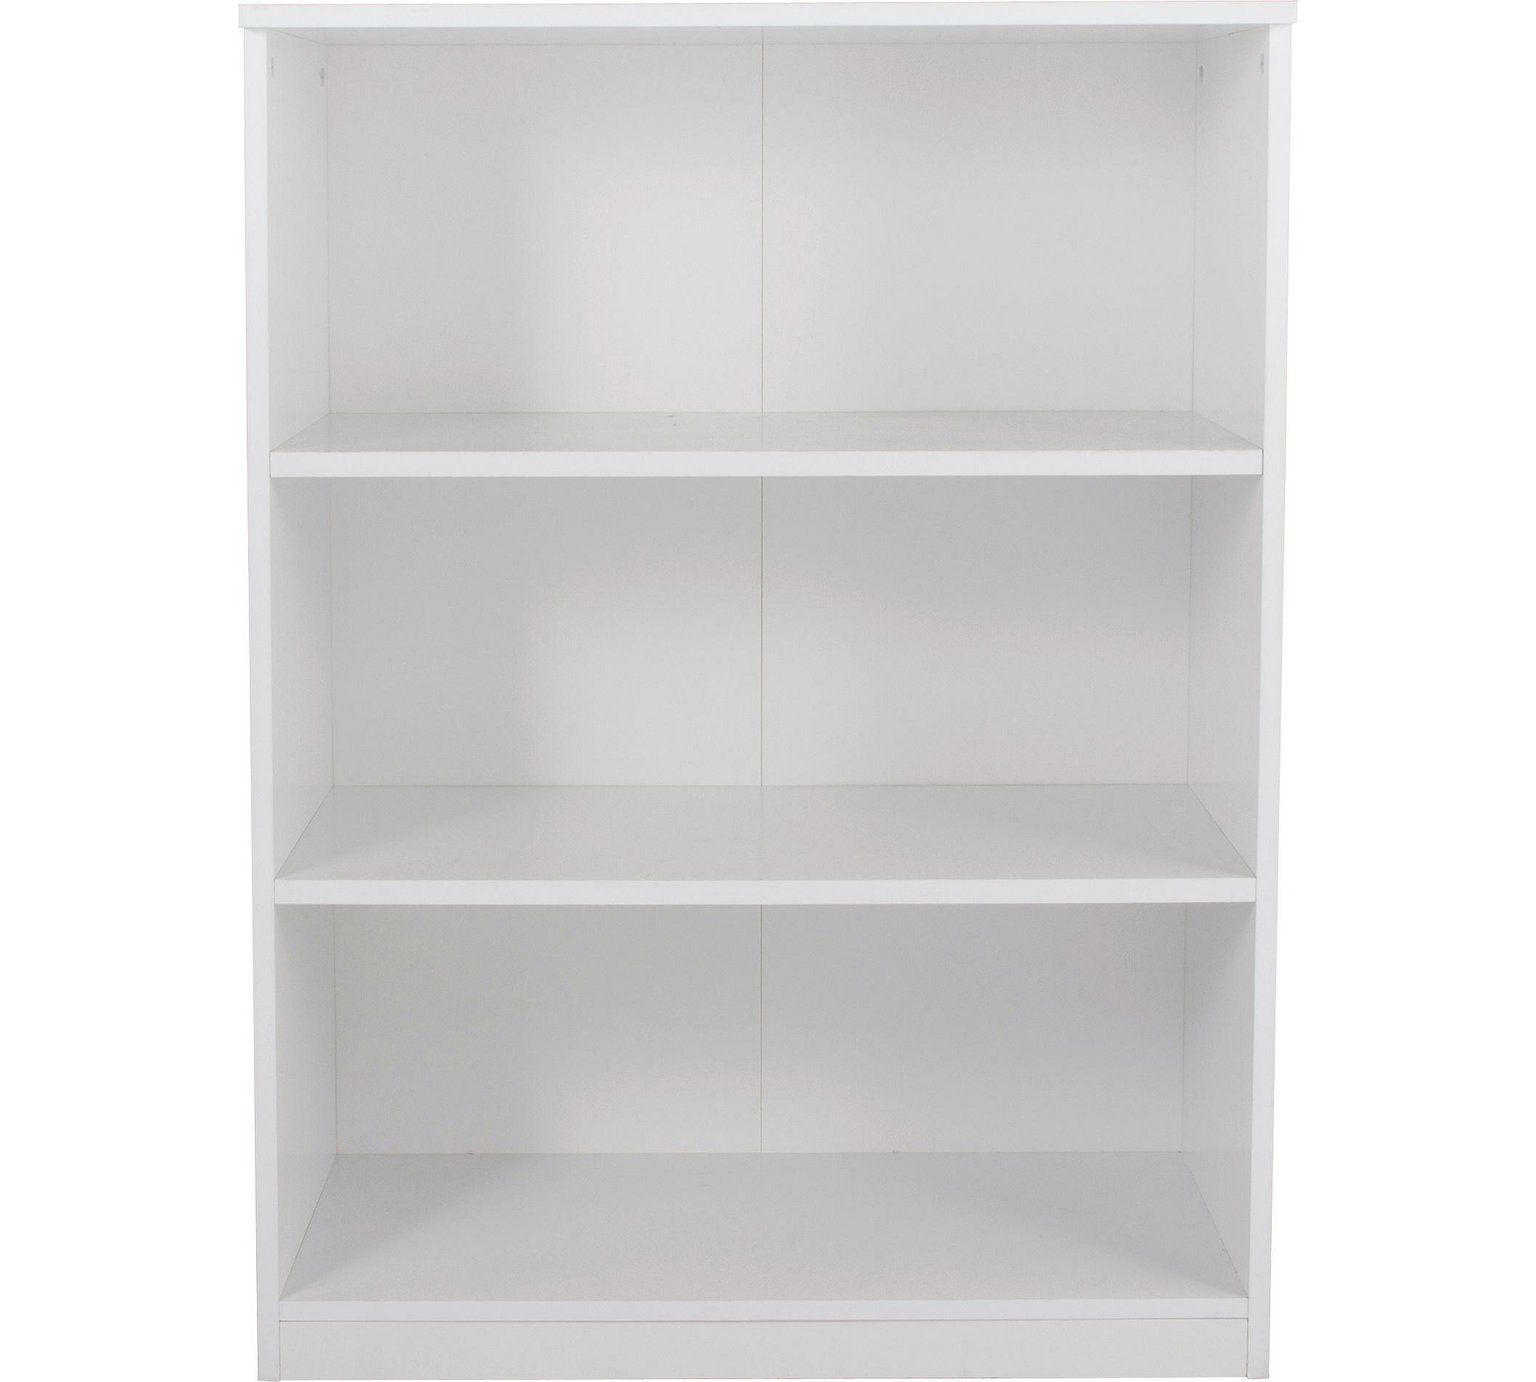 Buy Argos Home Pagnell White 3 Shelf Bookcase Toy Boxes Argos Bookcase 3 Shelf Bookcase Shelves